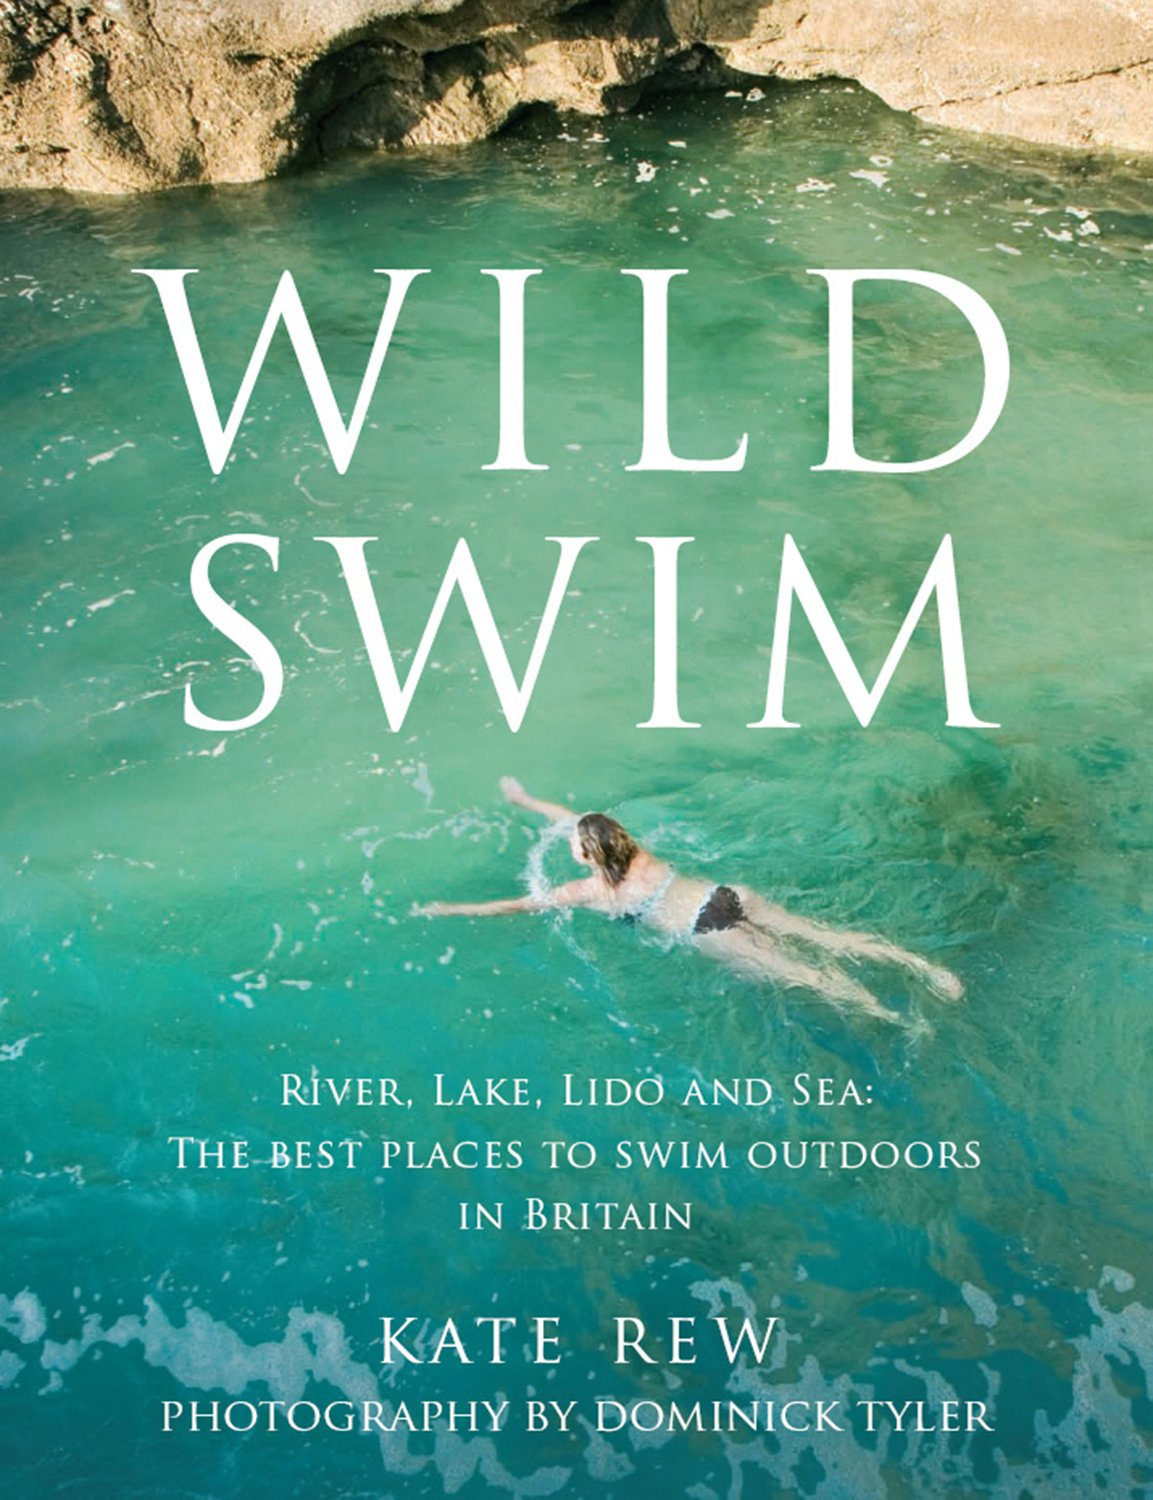 SwimTrek - kate rew book